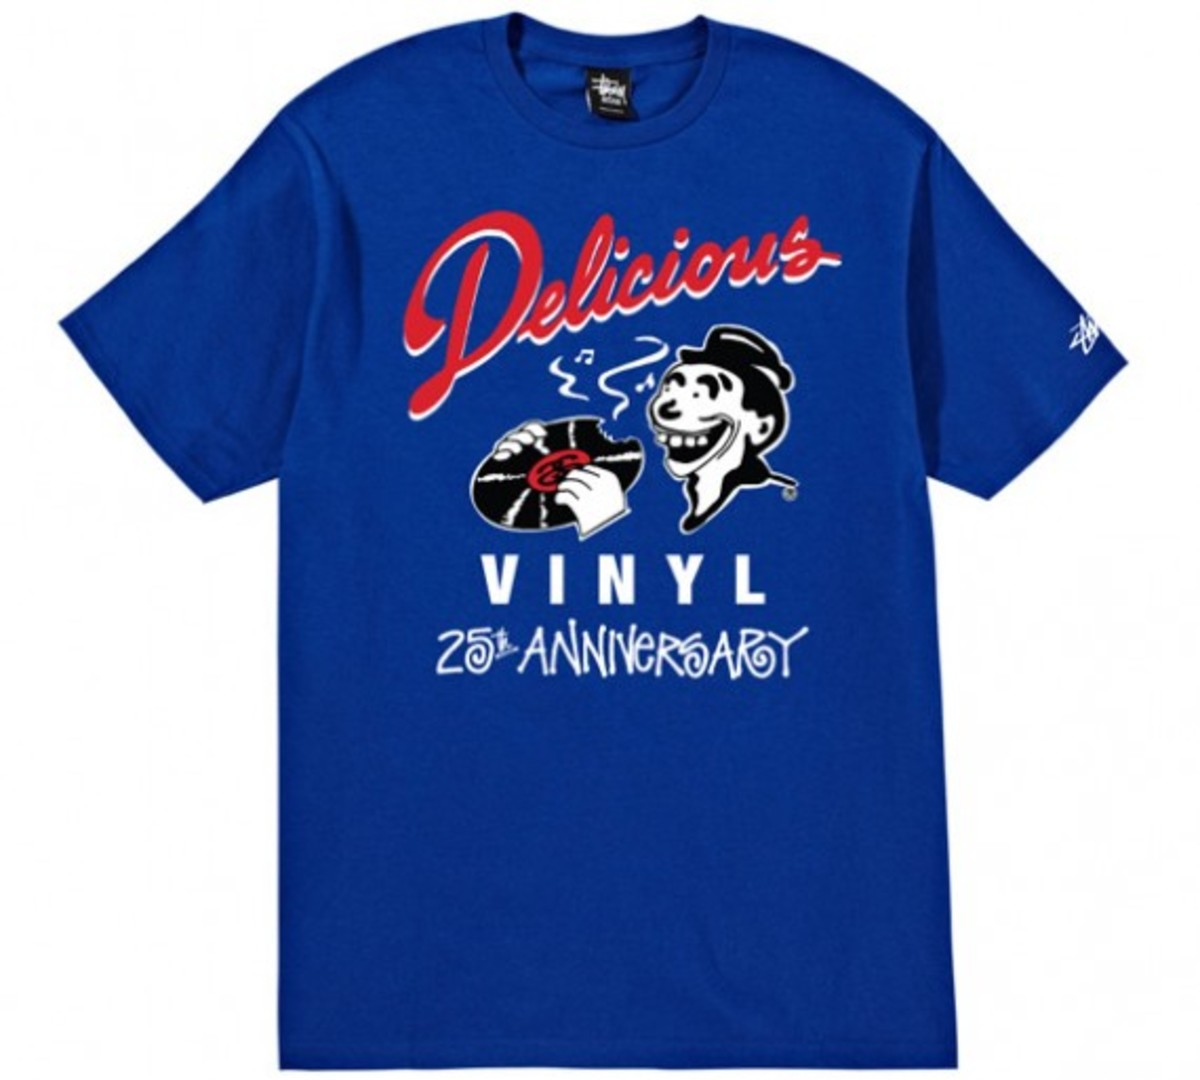 stussy-x-delicious-vinyl-records-25th-anniversary-collection-1